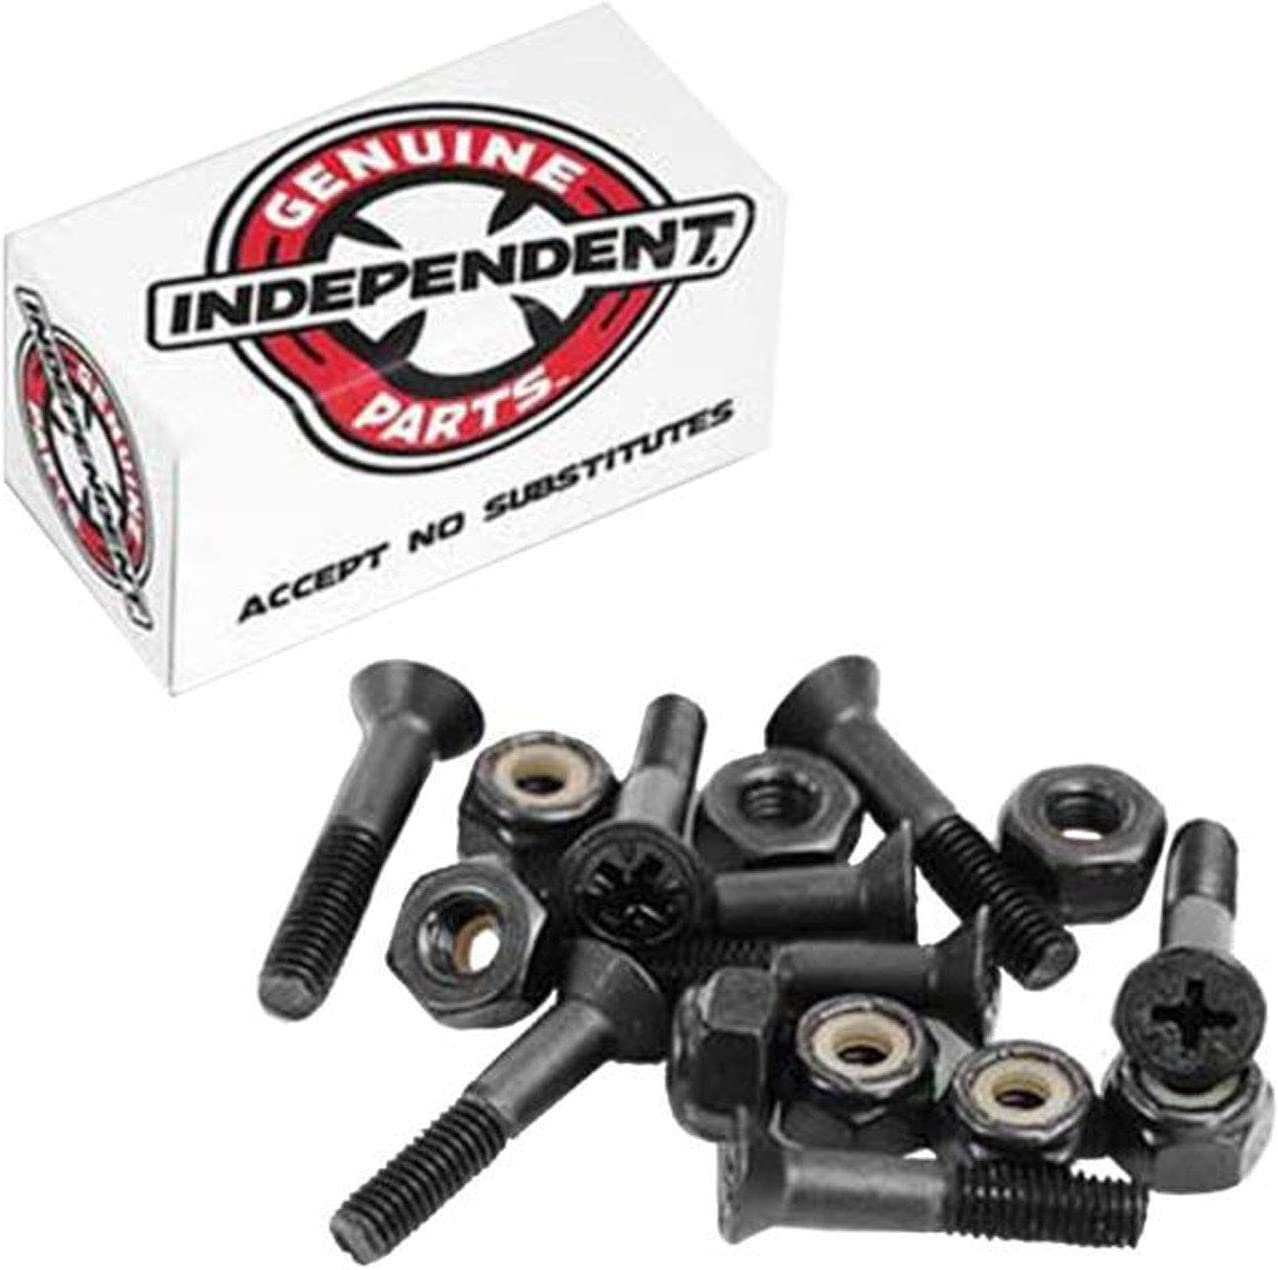 Luxury INDEPENDENT Phillips Cross Seasonal Wrap Introduction Bolts